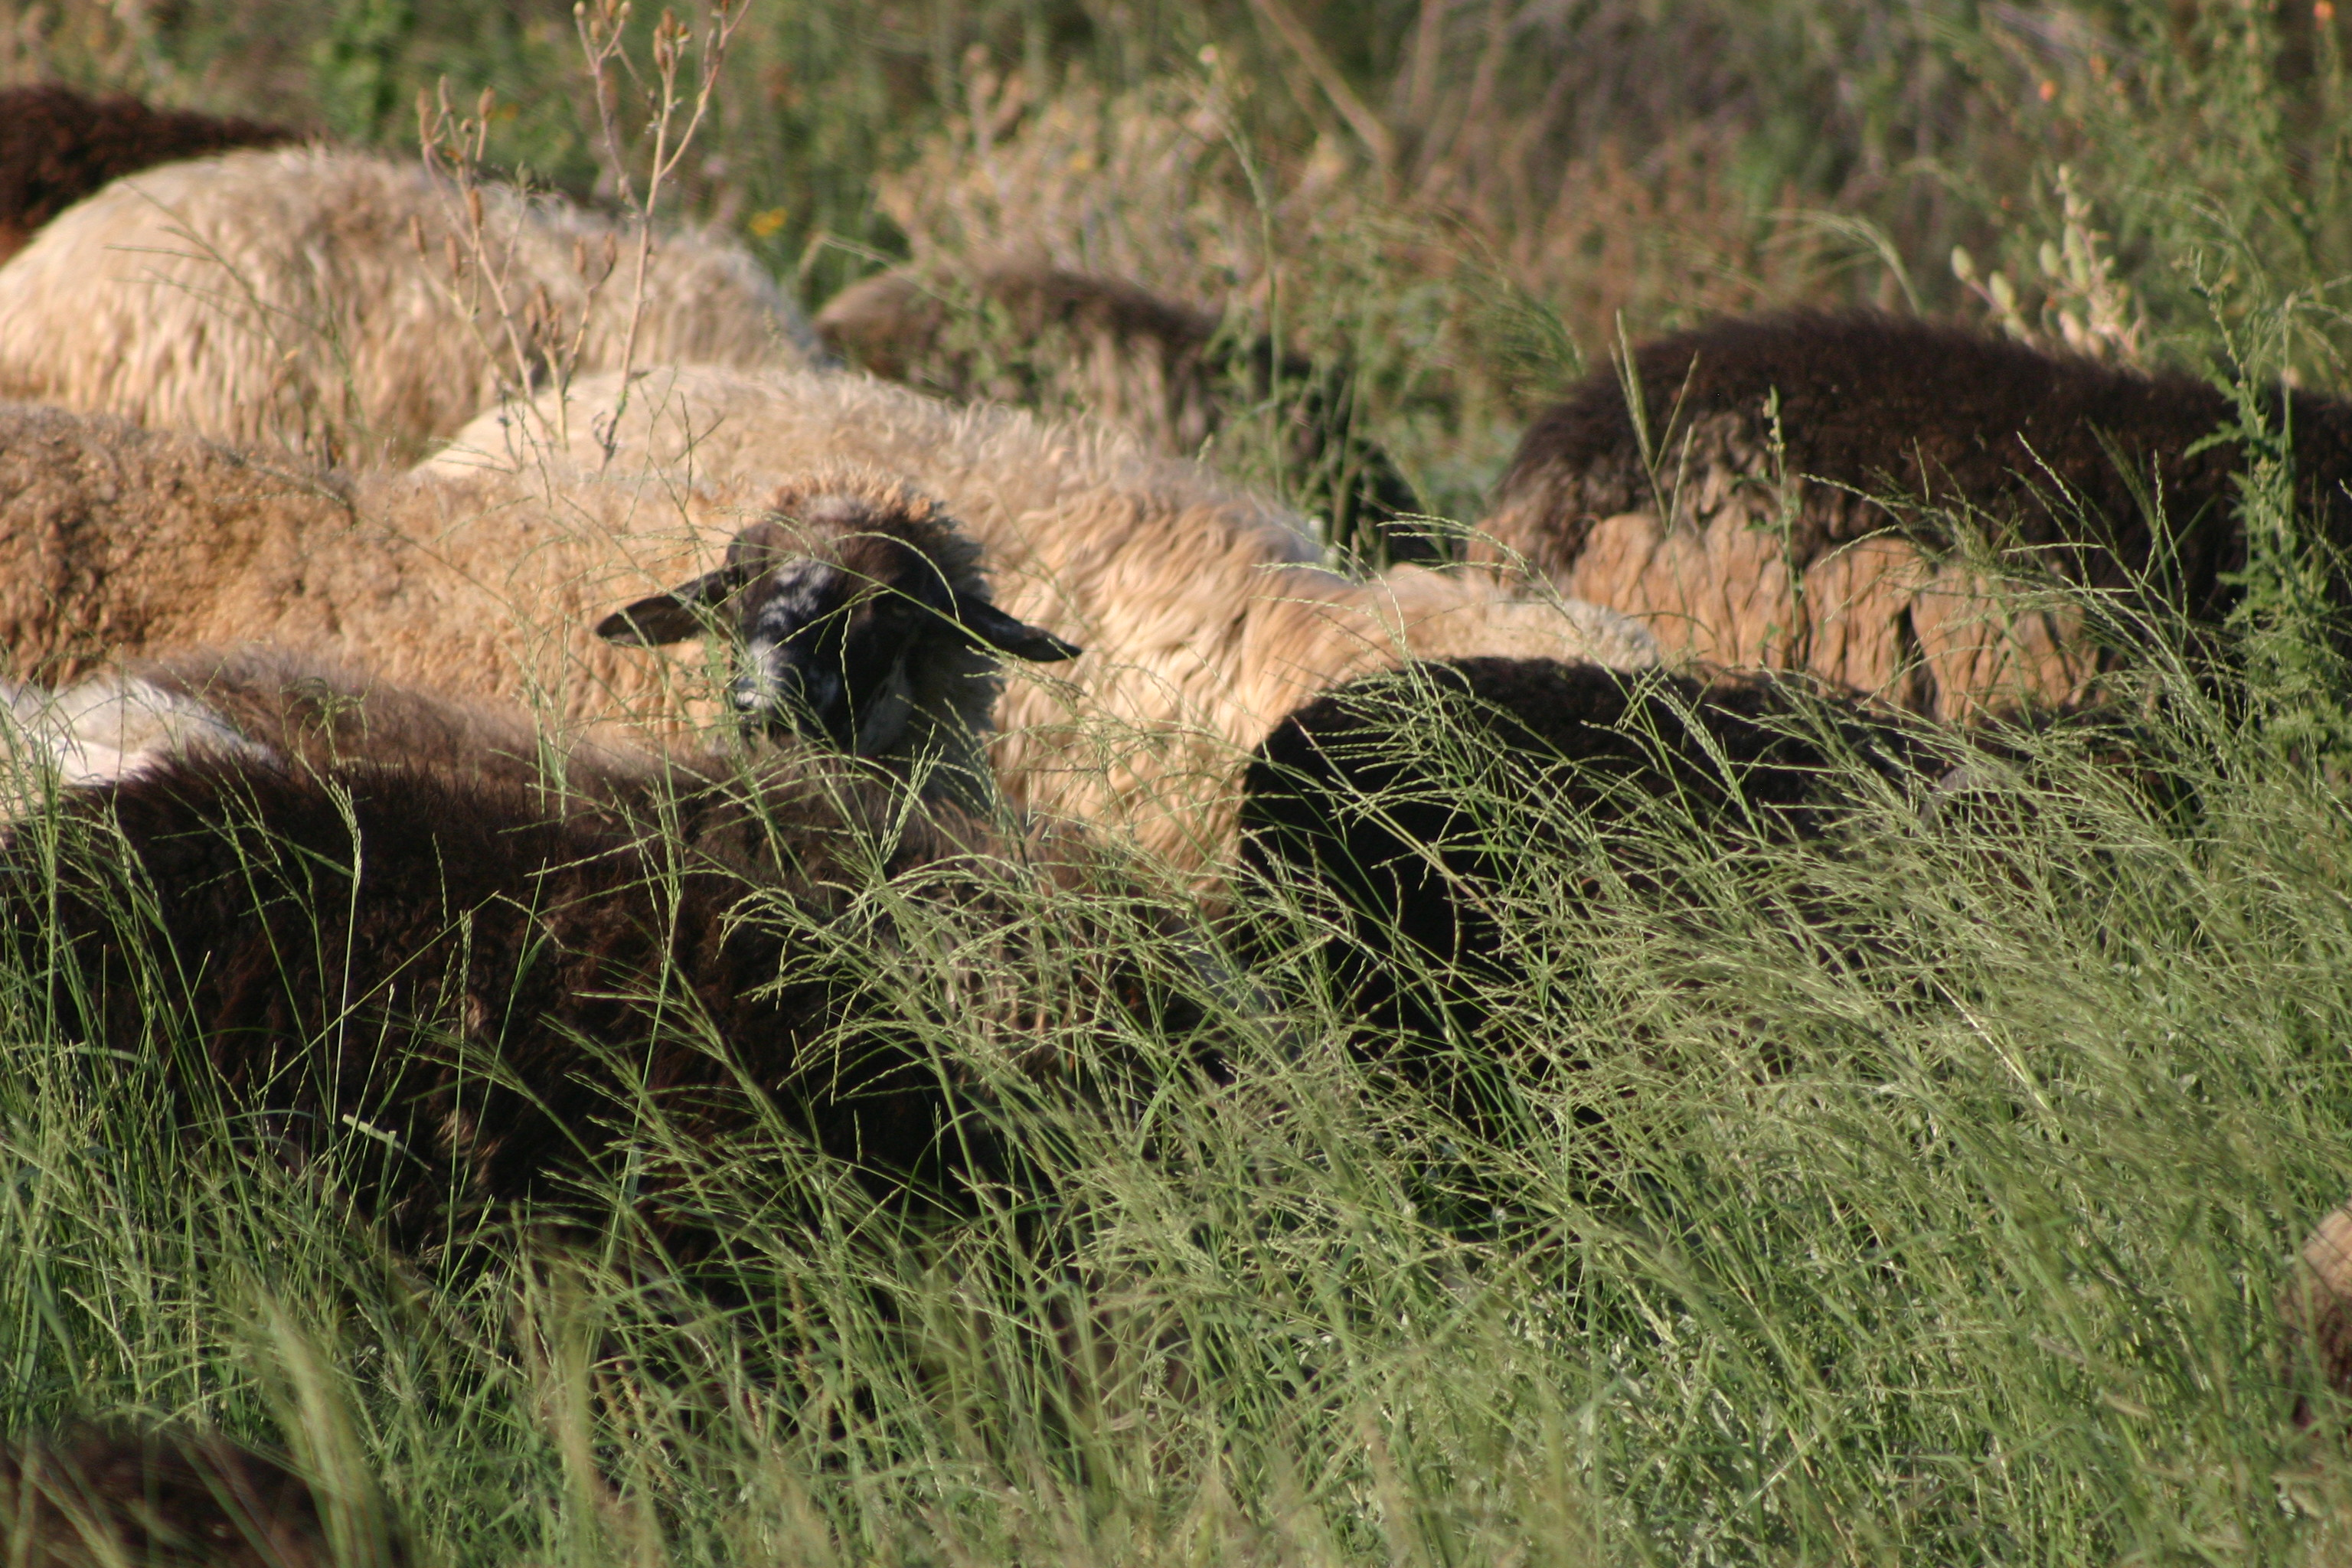 Sheep on summer range grass